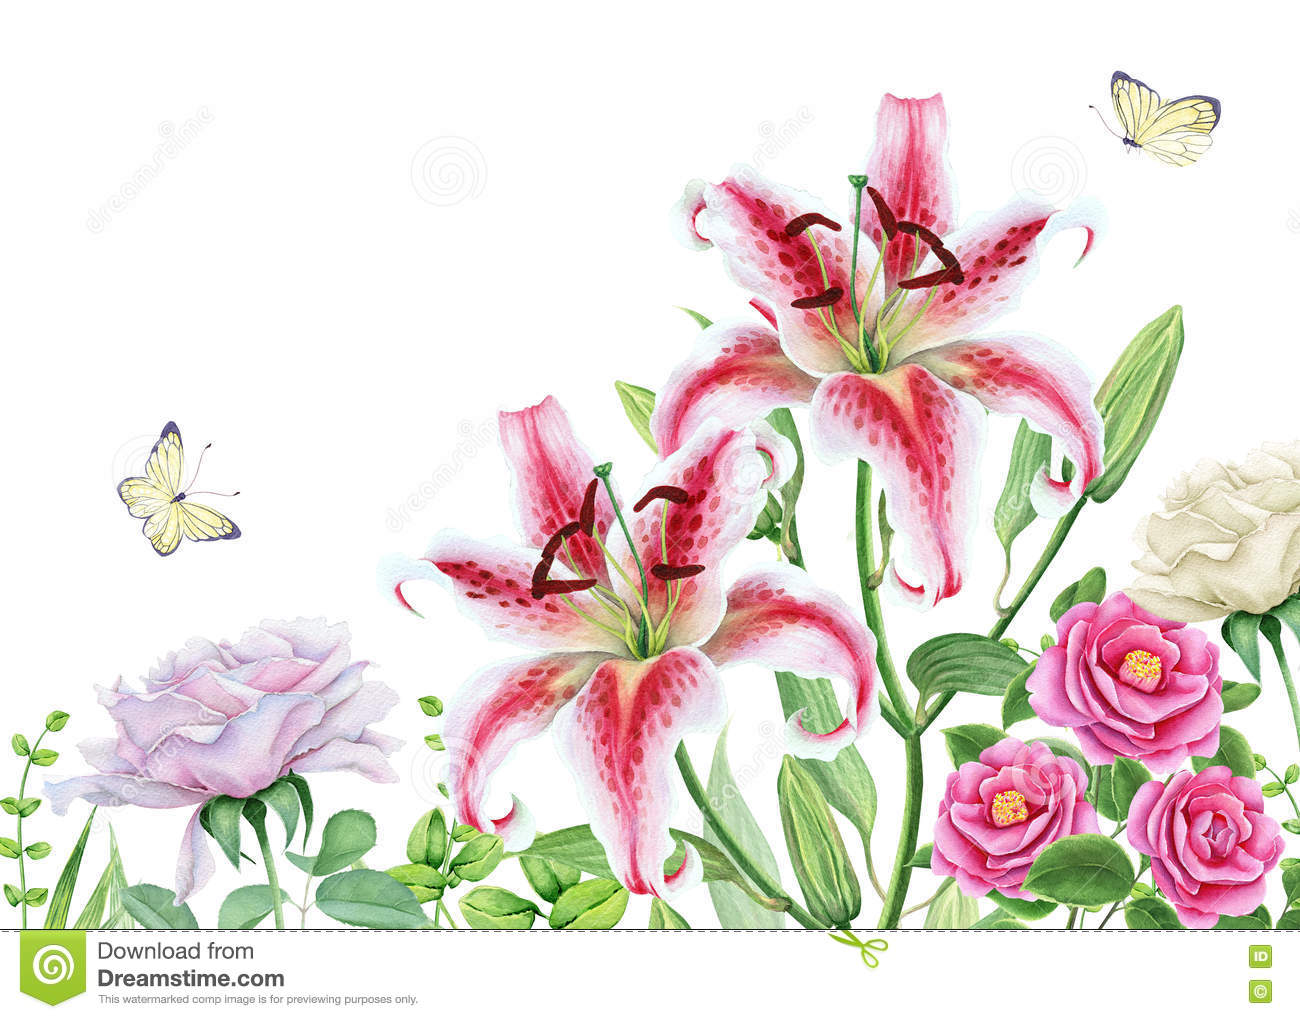 Watercolor Floral Image With Lily Camellia And Rose Flowers Stock